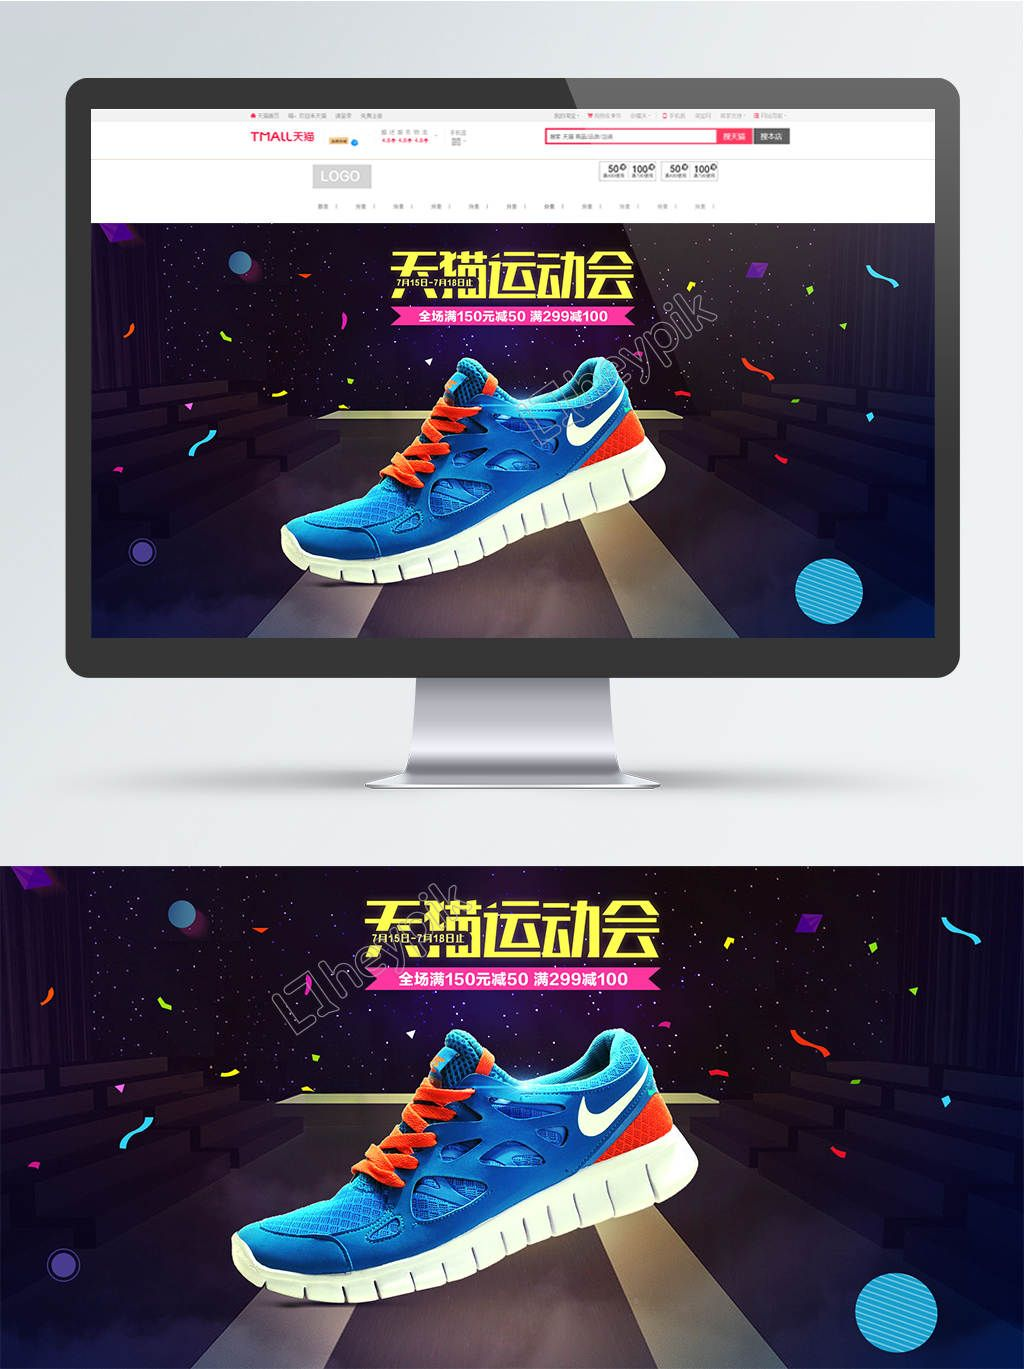 Download Dark Promotion Games Sneakers Sale Poster Banner Png And Mockup Sale Poster Sneakers For Sale Sneaker Posters